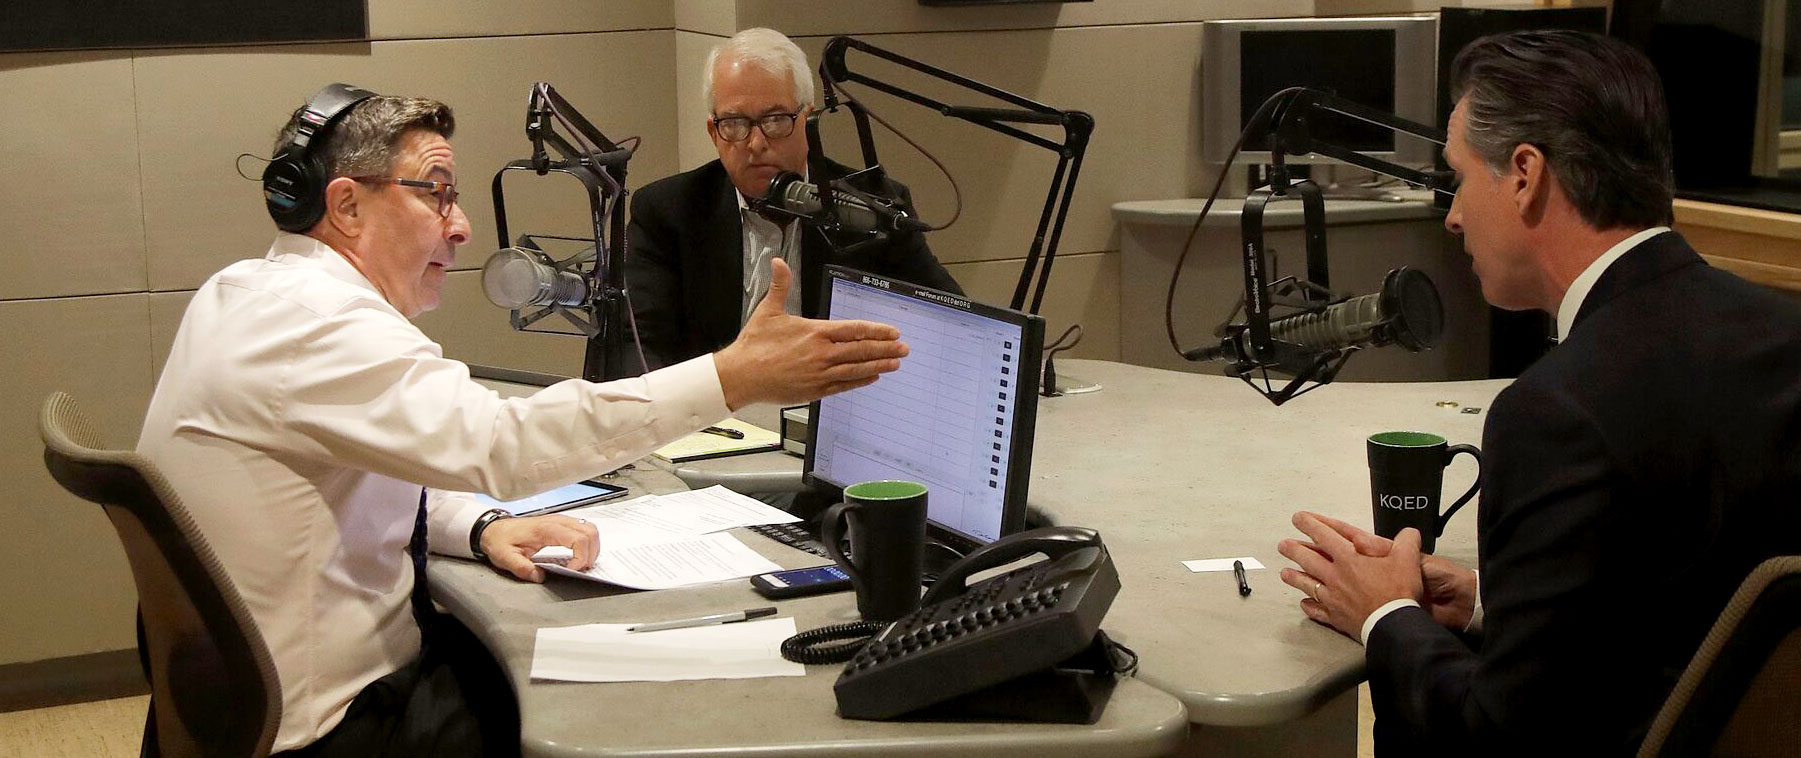 John Cox, Gavin Newsom on Values, Temperament